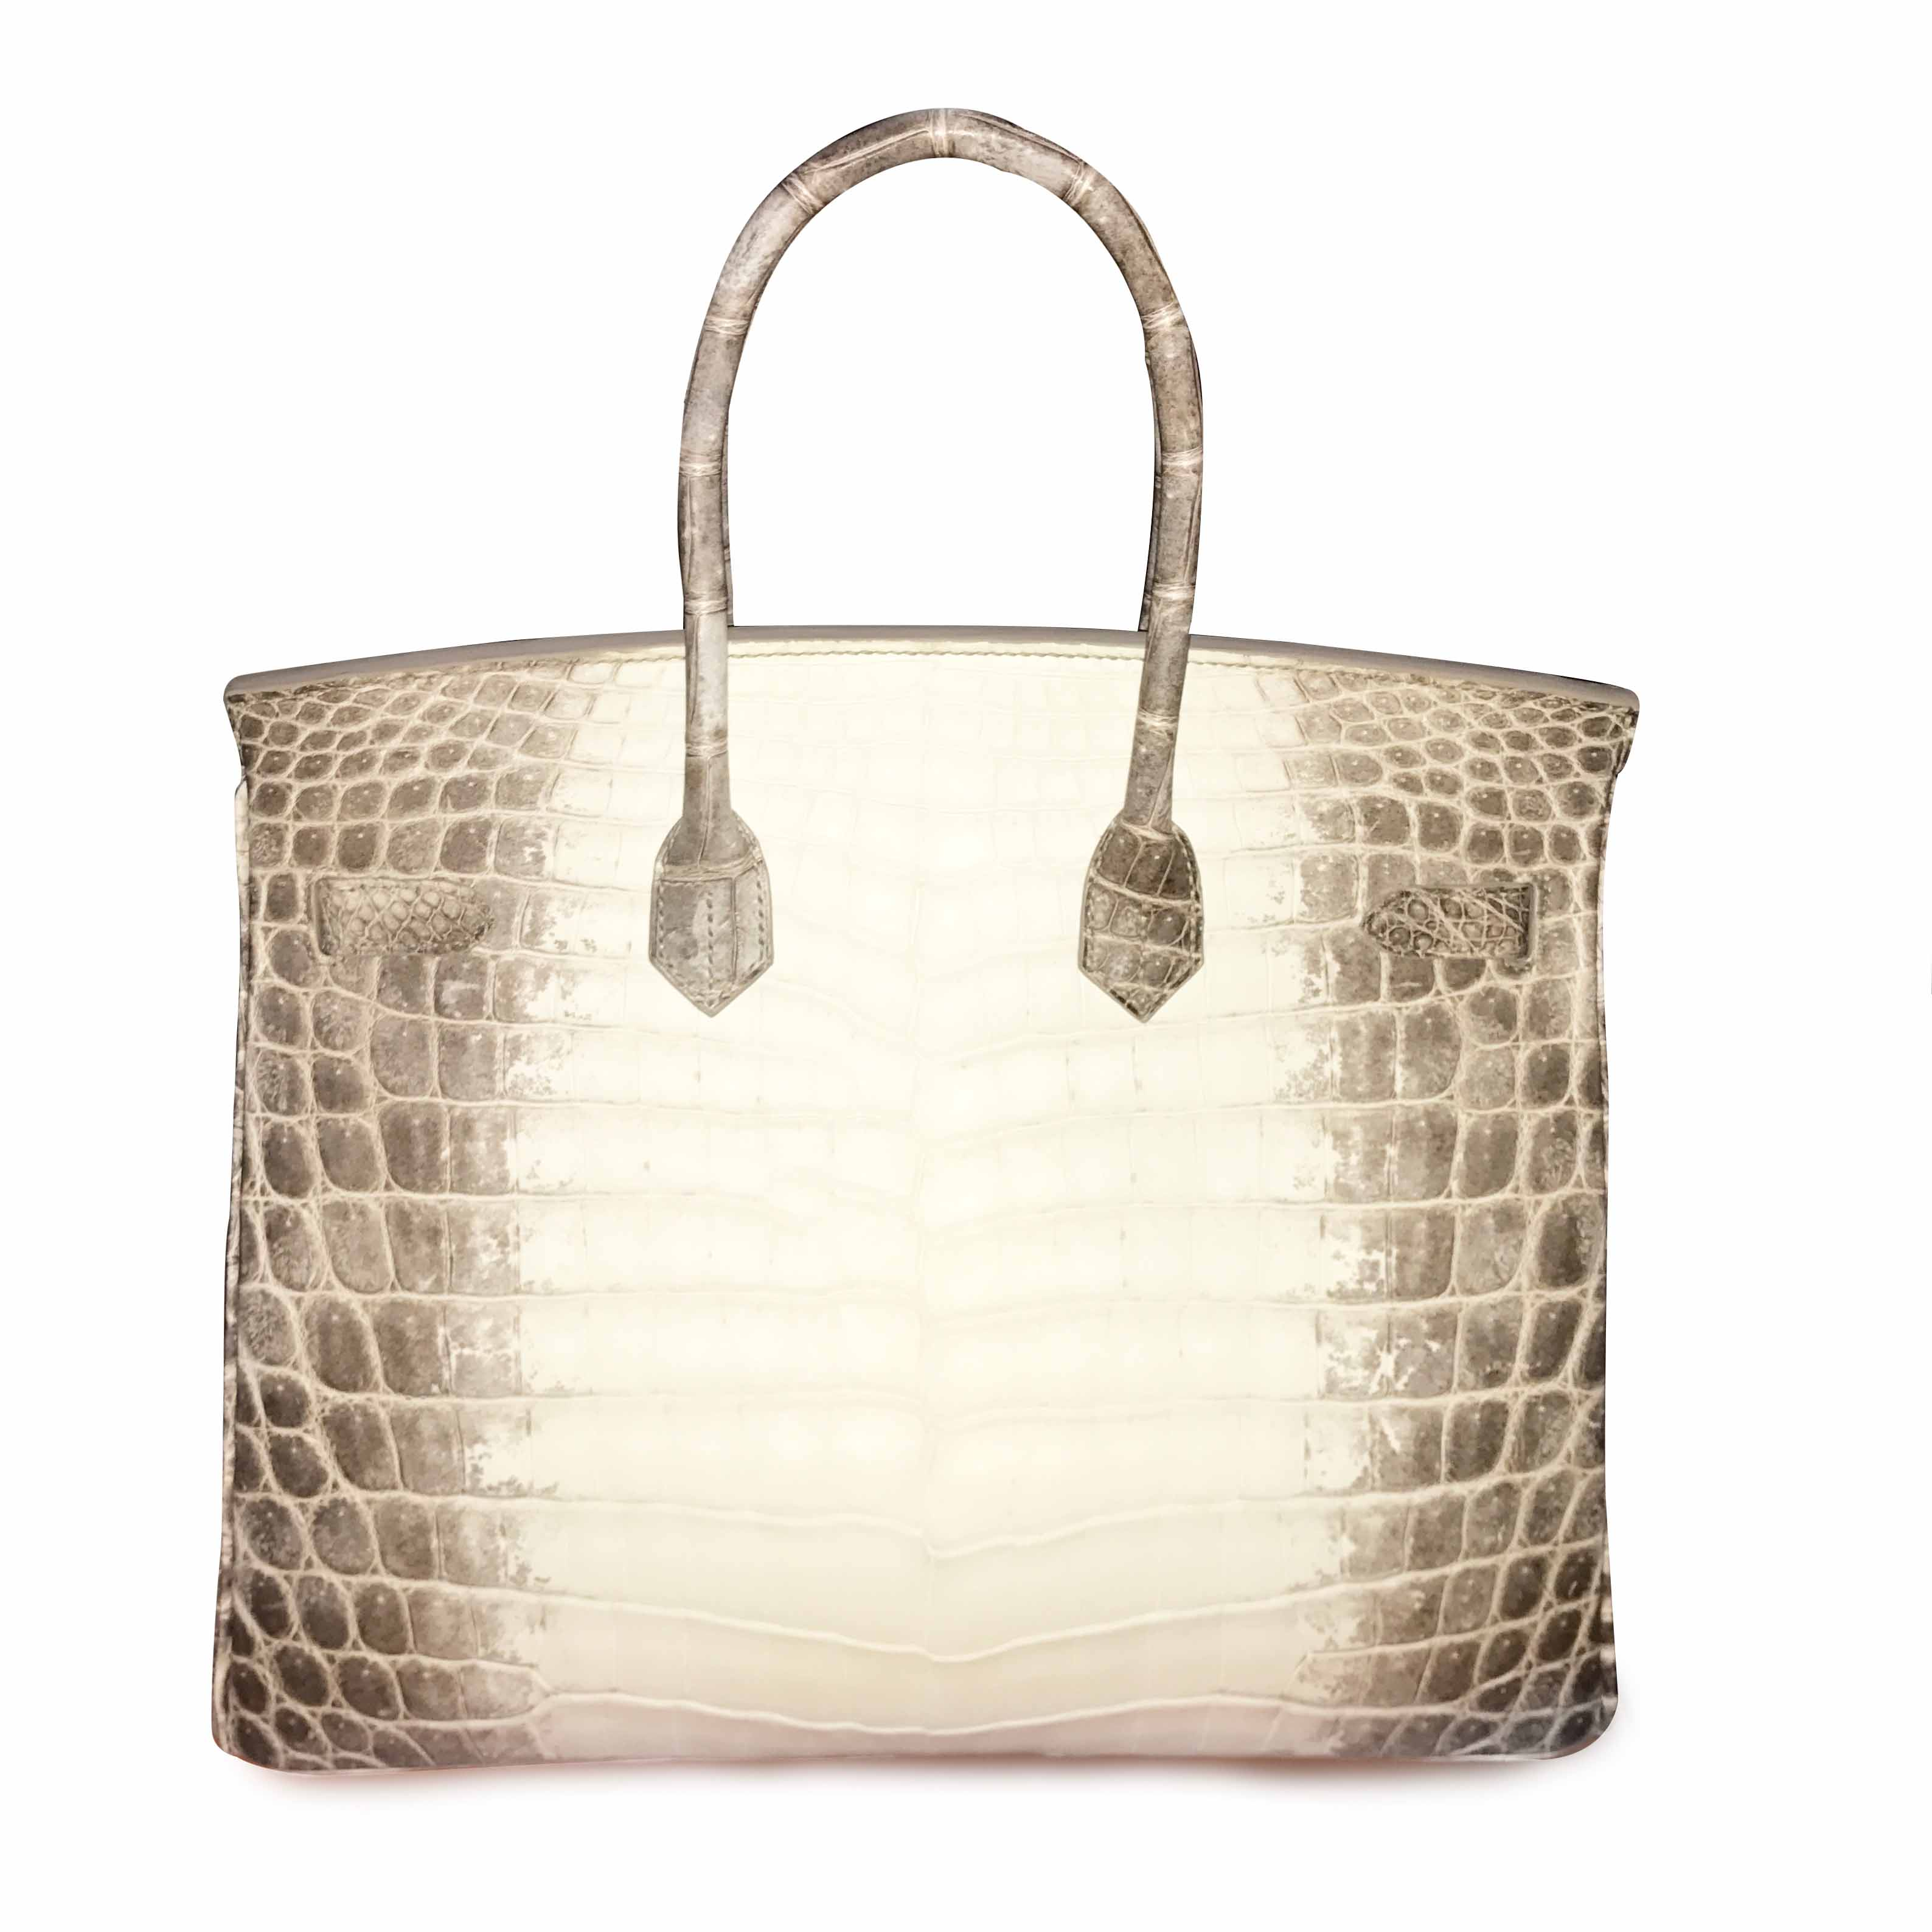 Skip the waitinglist and get your hermes birkin 35 crocodile niloticus himalaya now at labellov.com